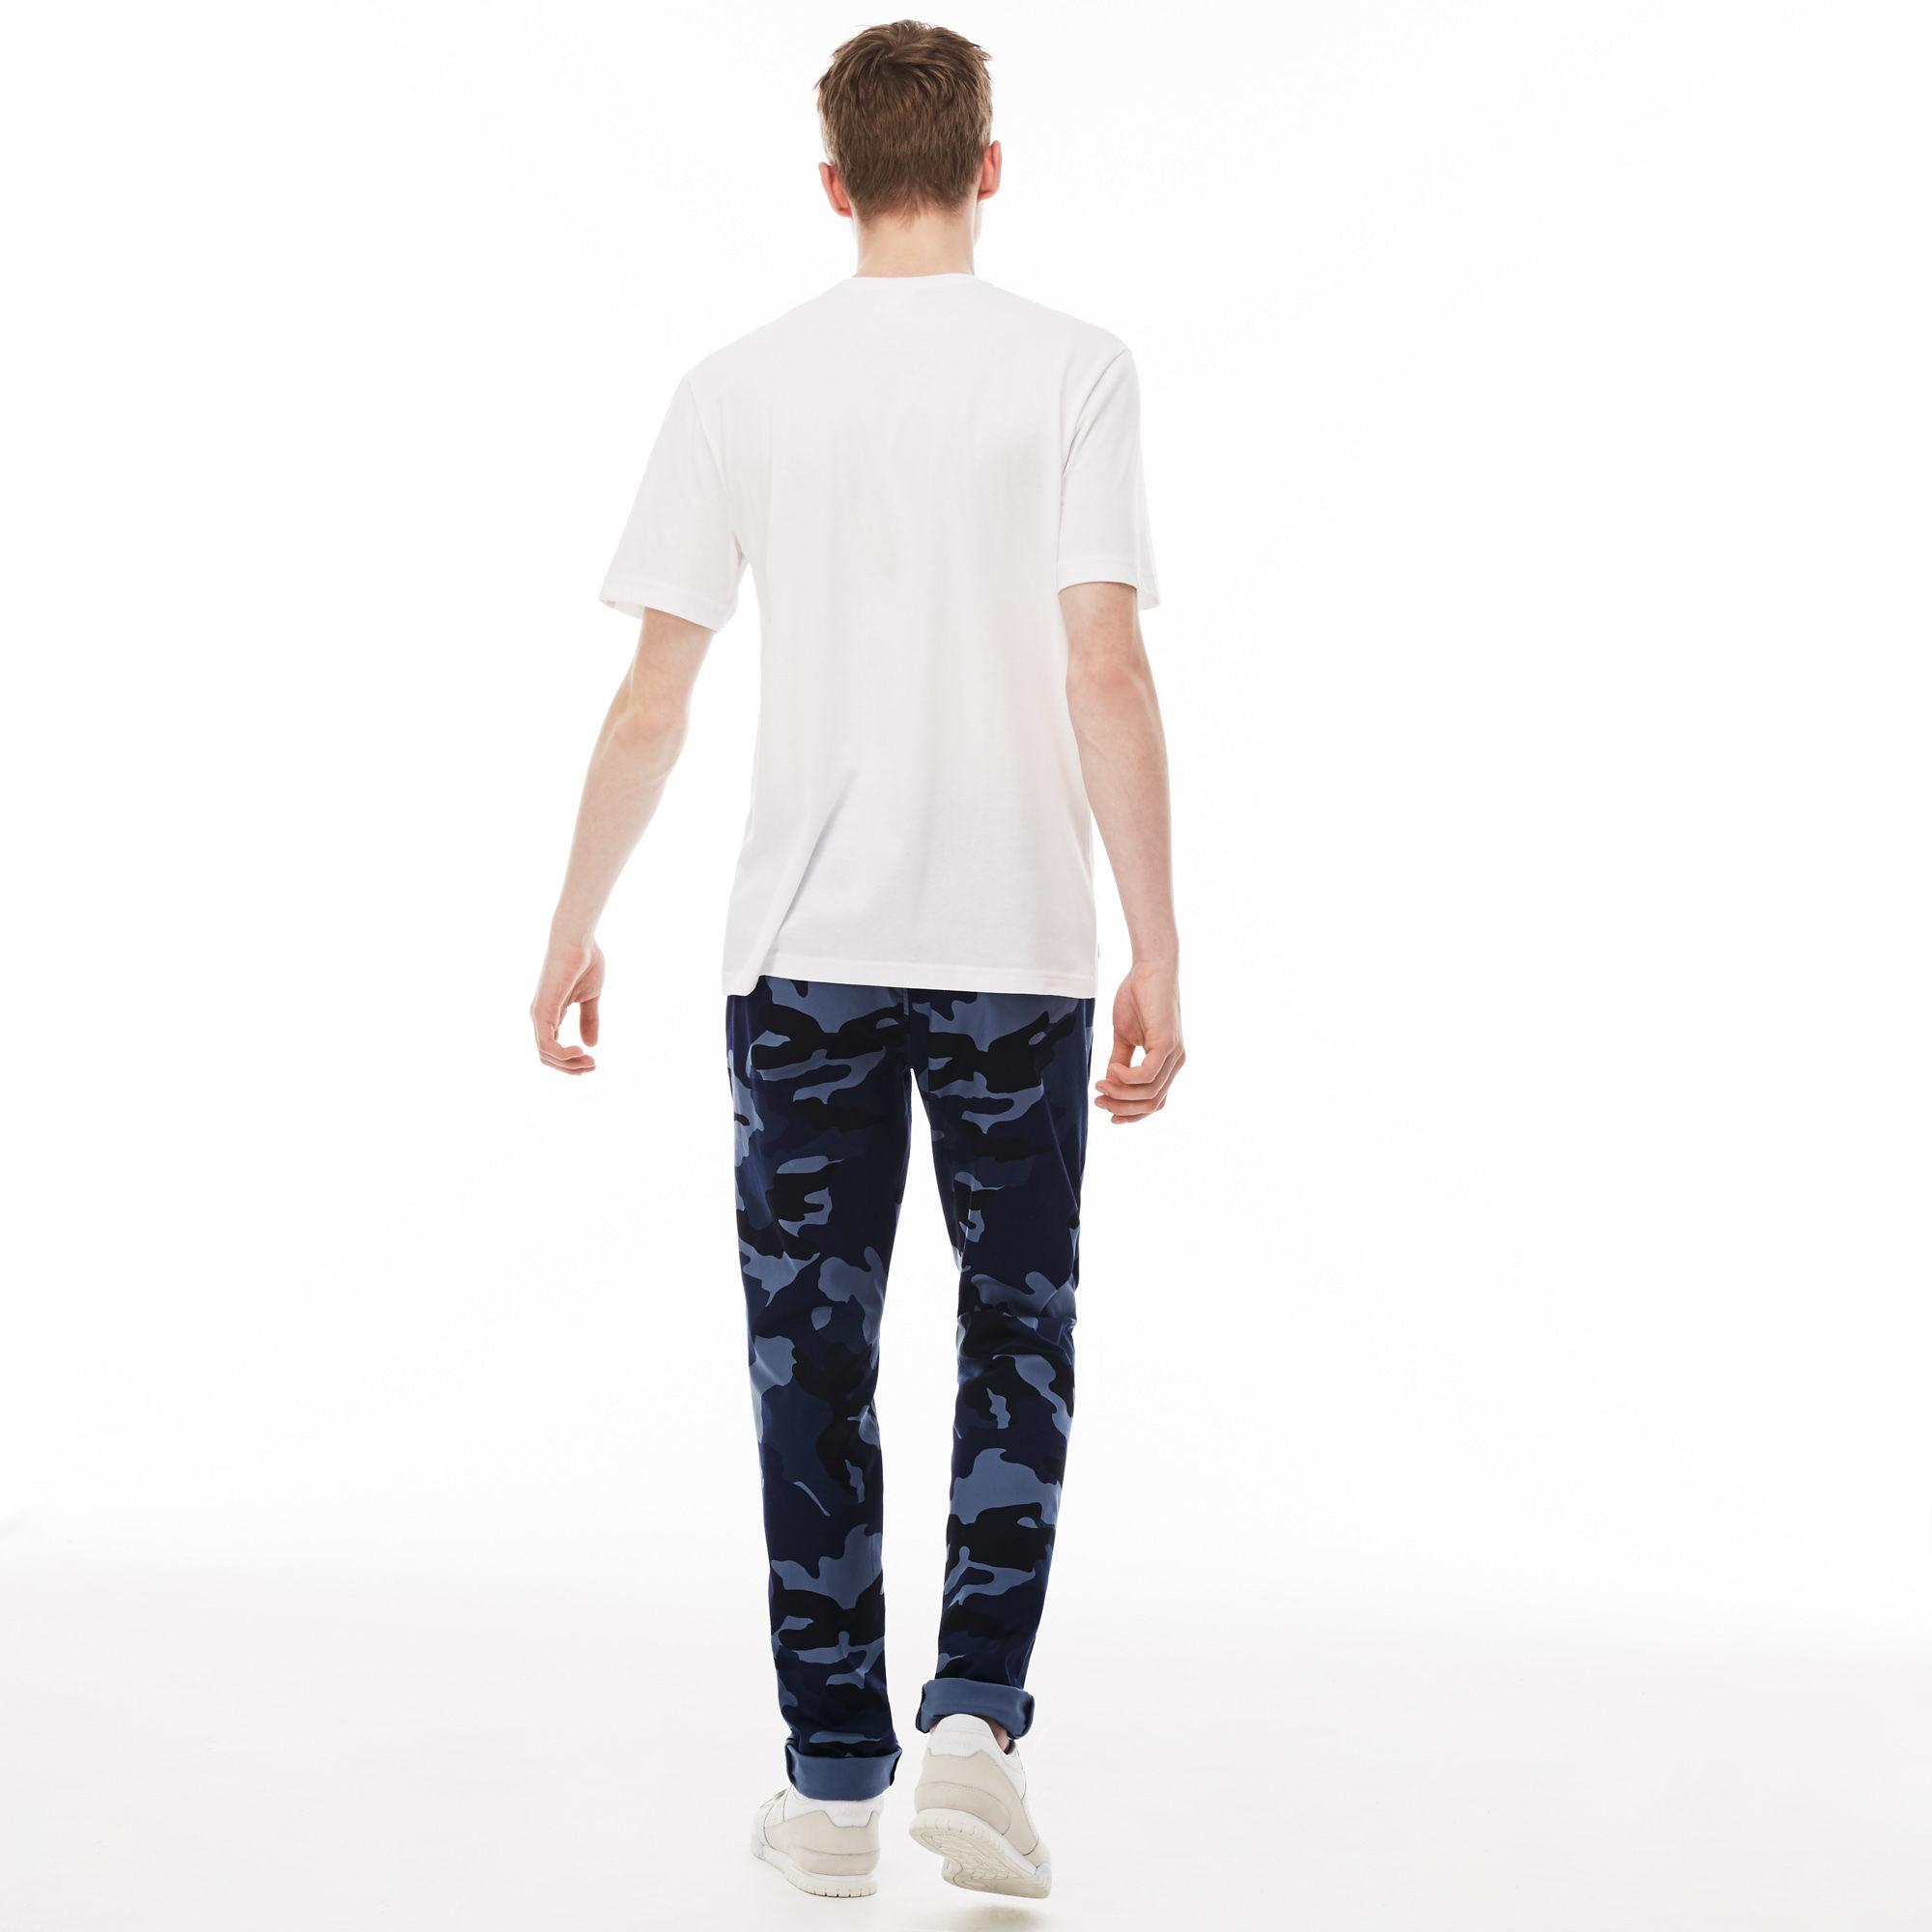 0a595c52 Lyst - Lacoste Live Print Twill Chino Pants in Blue for Men